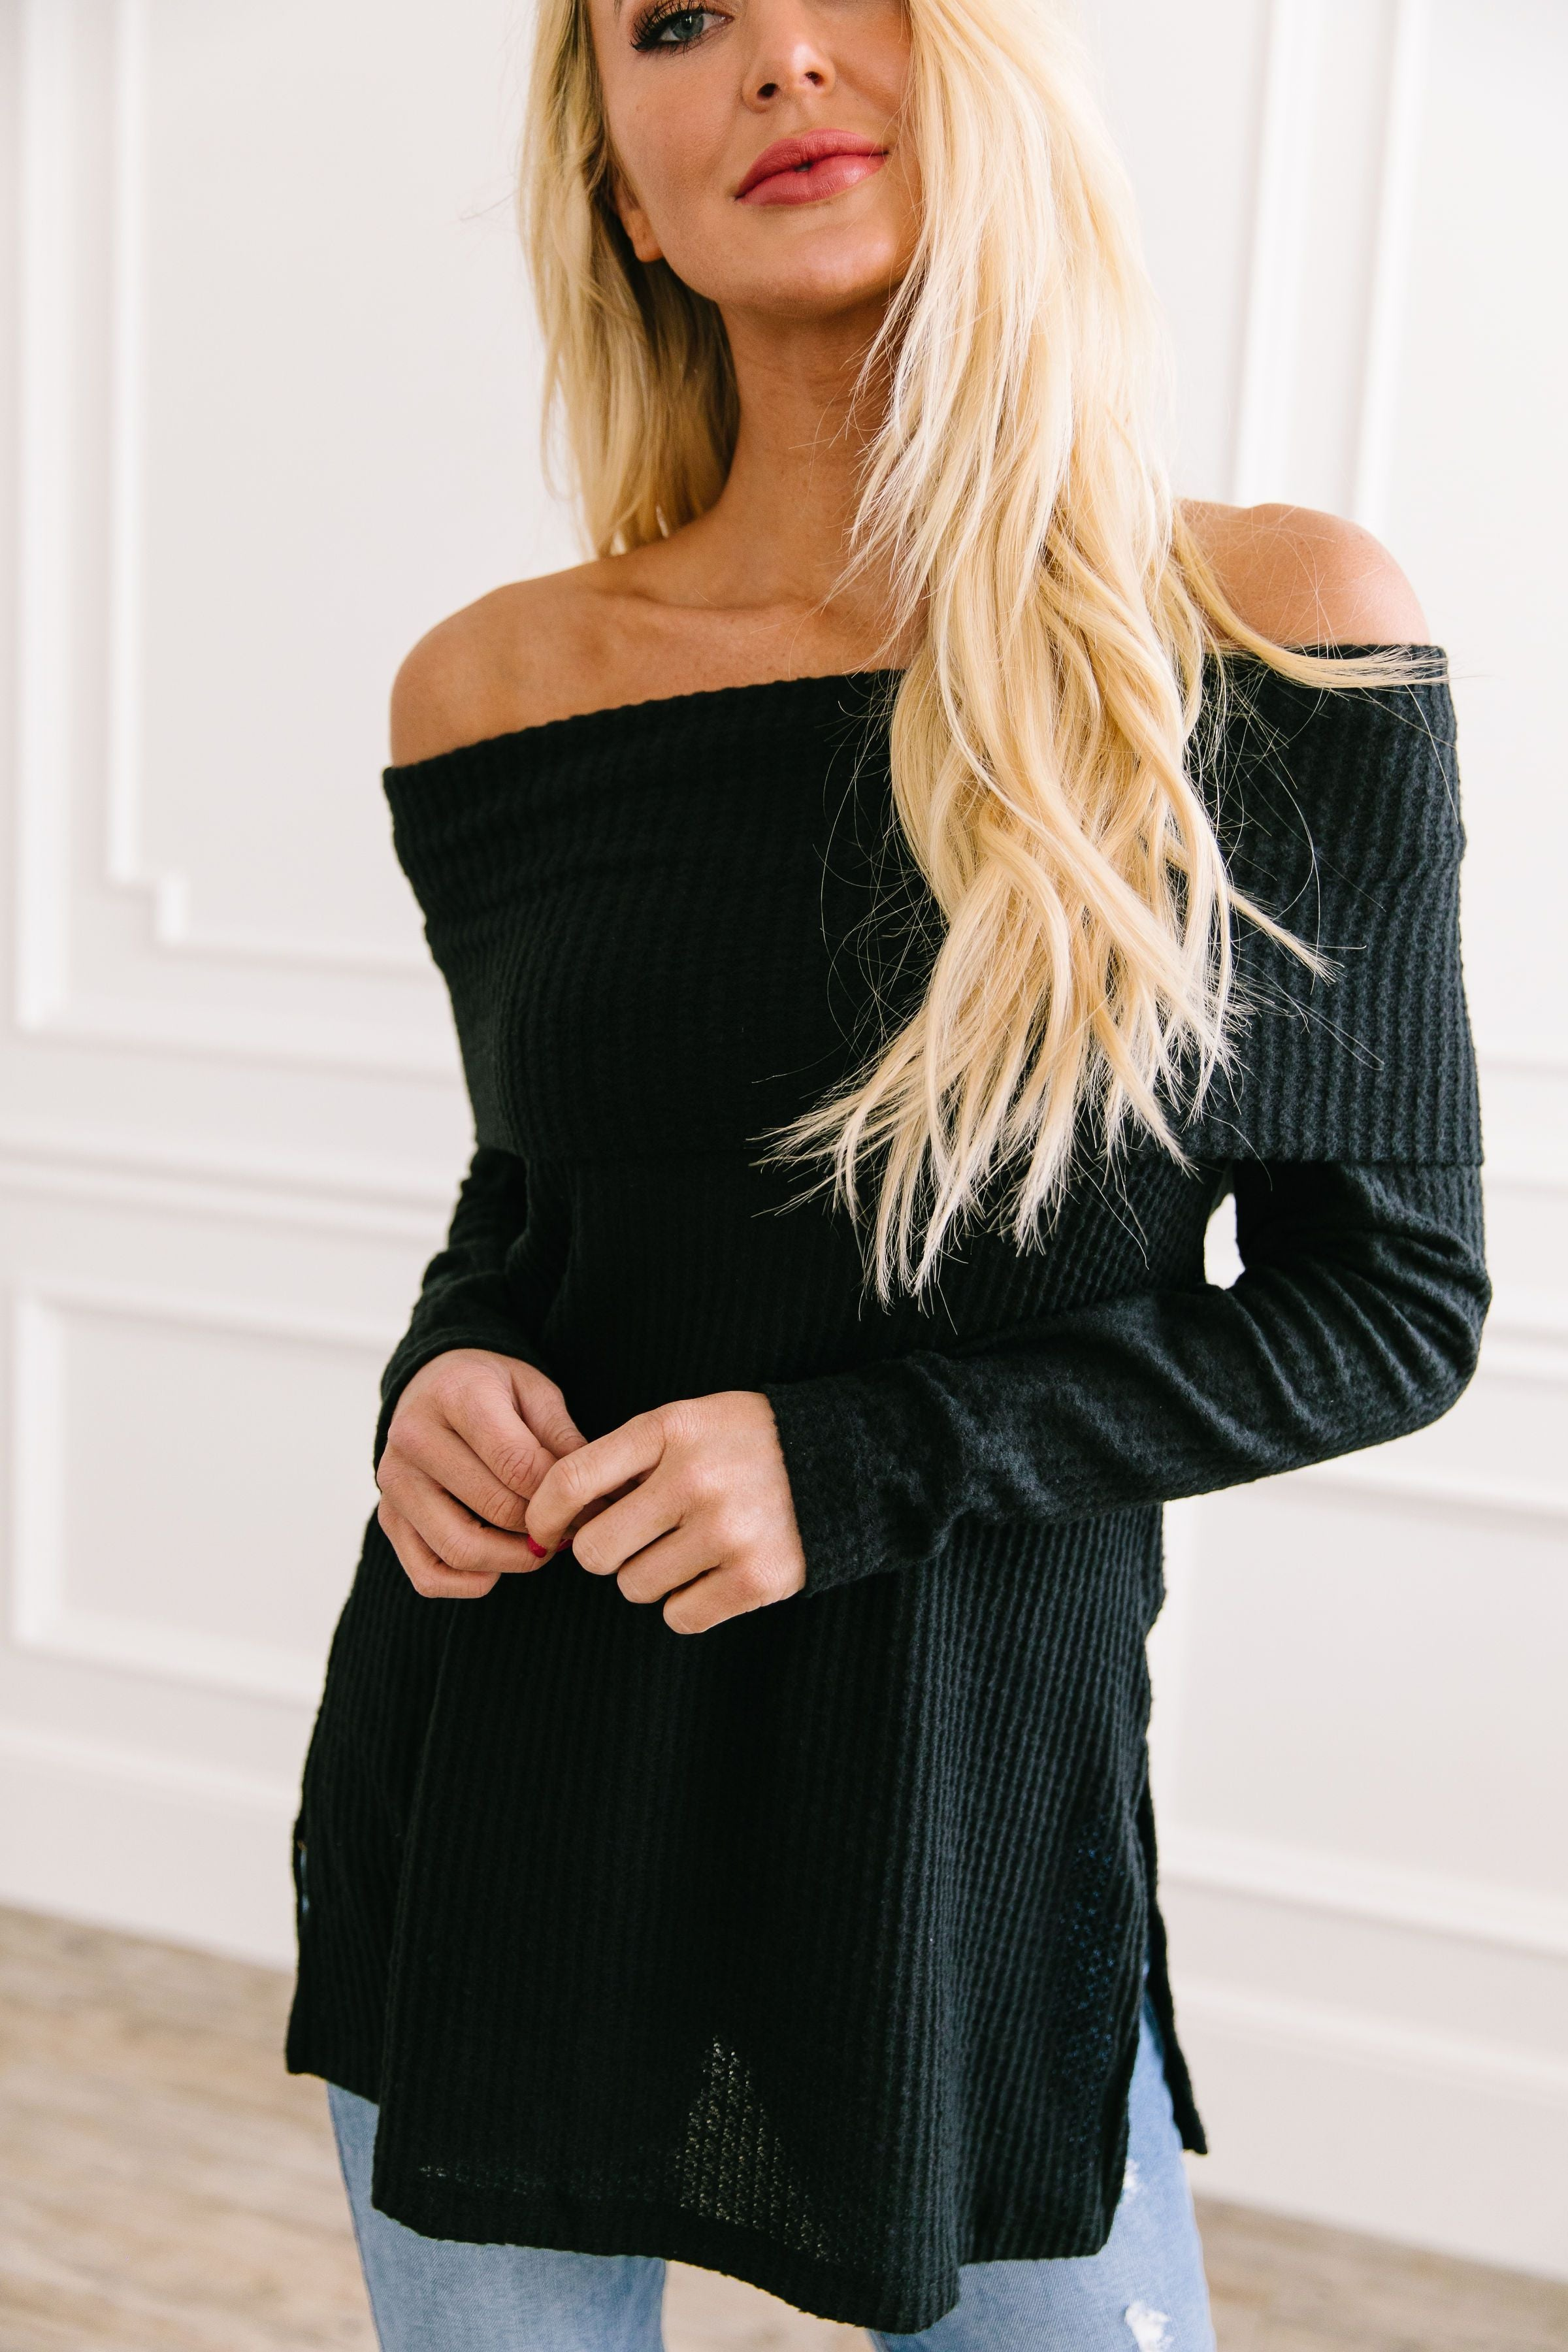 Isn't She Lovely Black Waffle Knit Top - ALL SALES FINAL